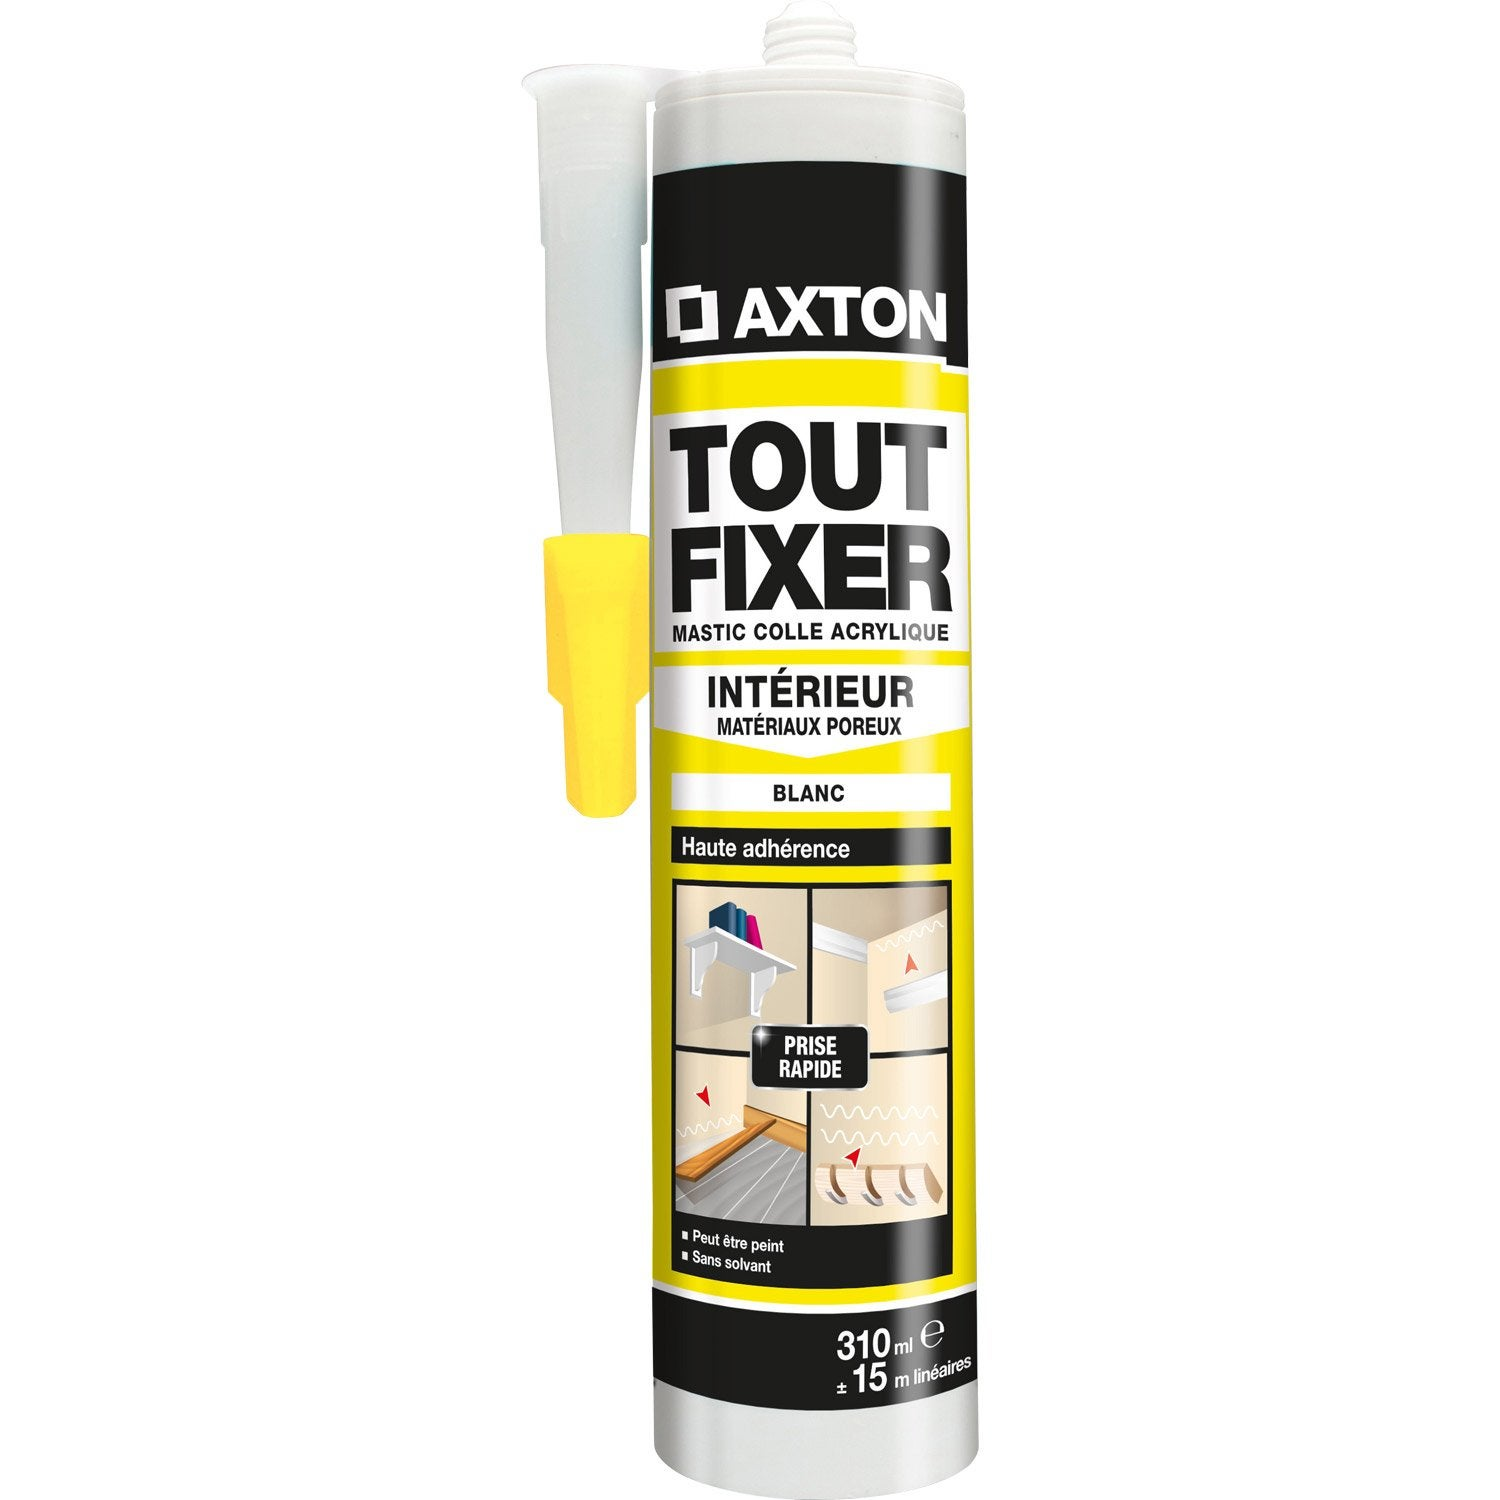 Colle mastic tout fixer axton 310 ml leroy merlin for Colle ciment exterieur